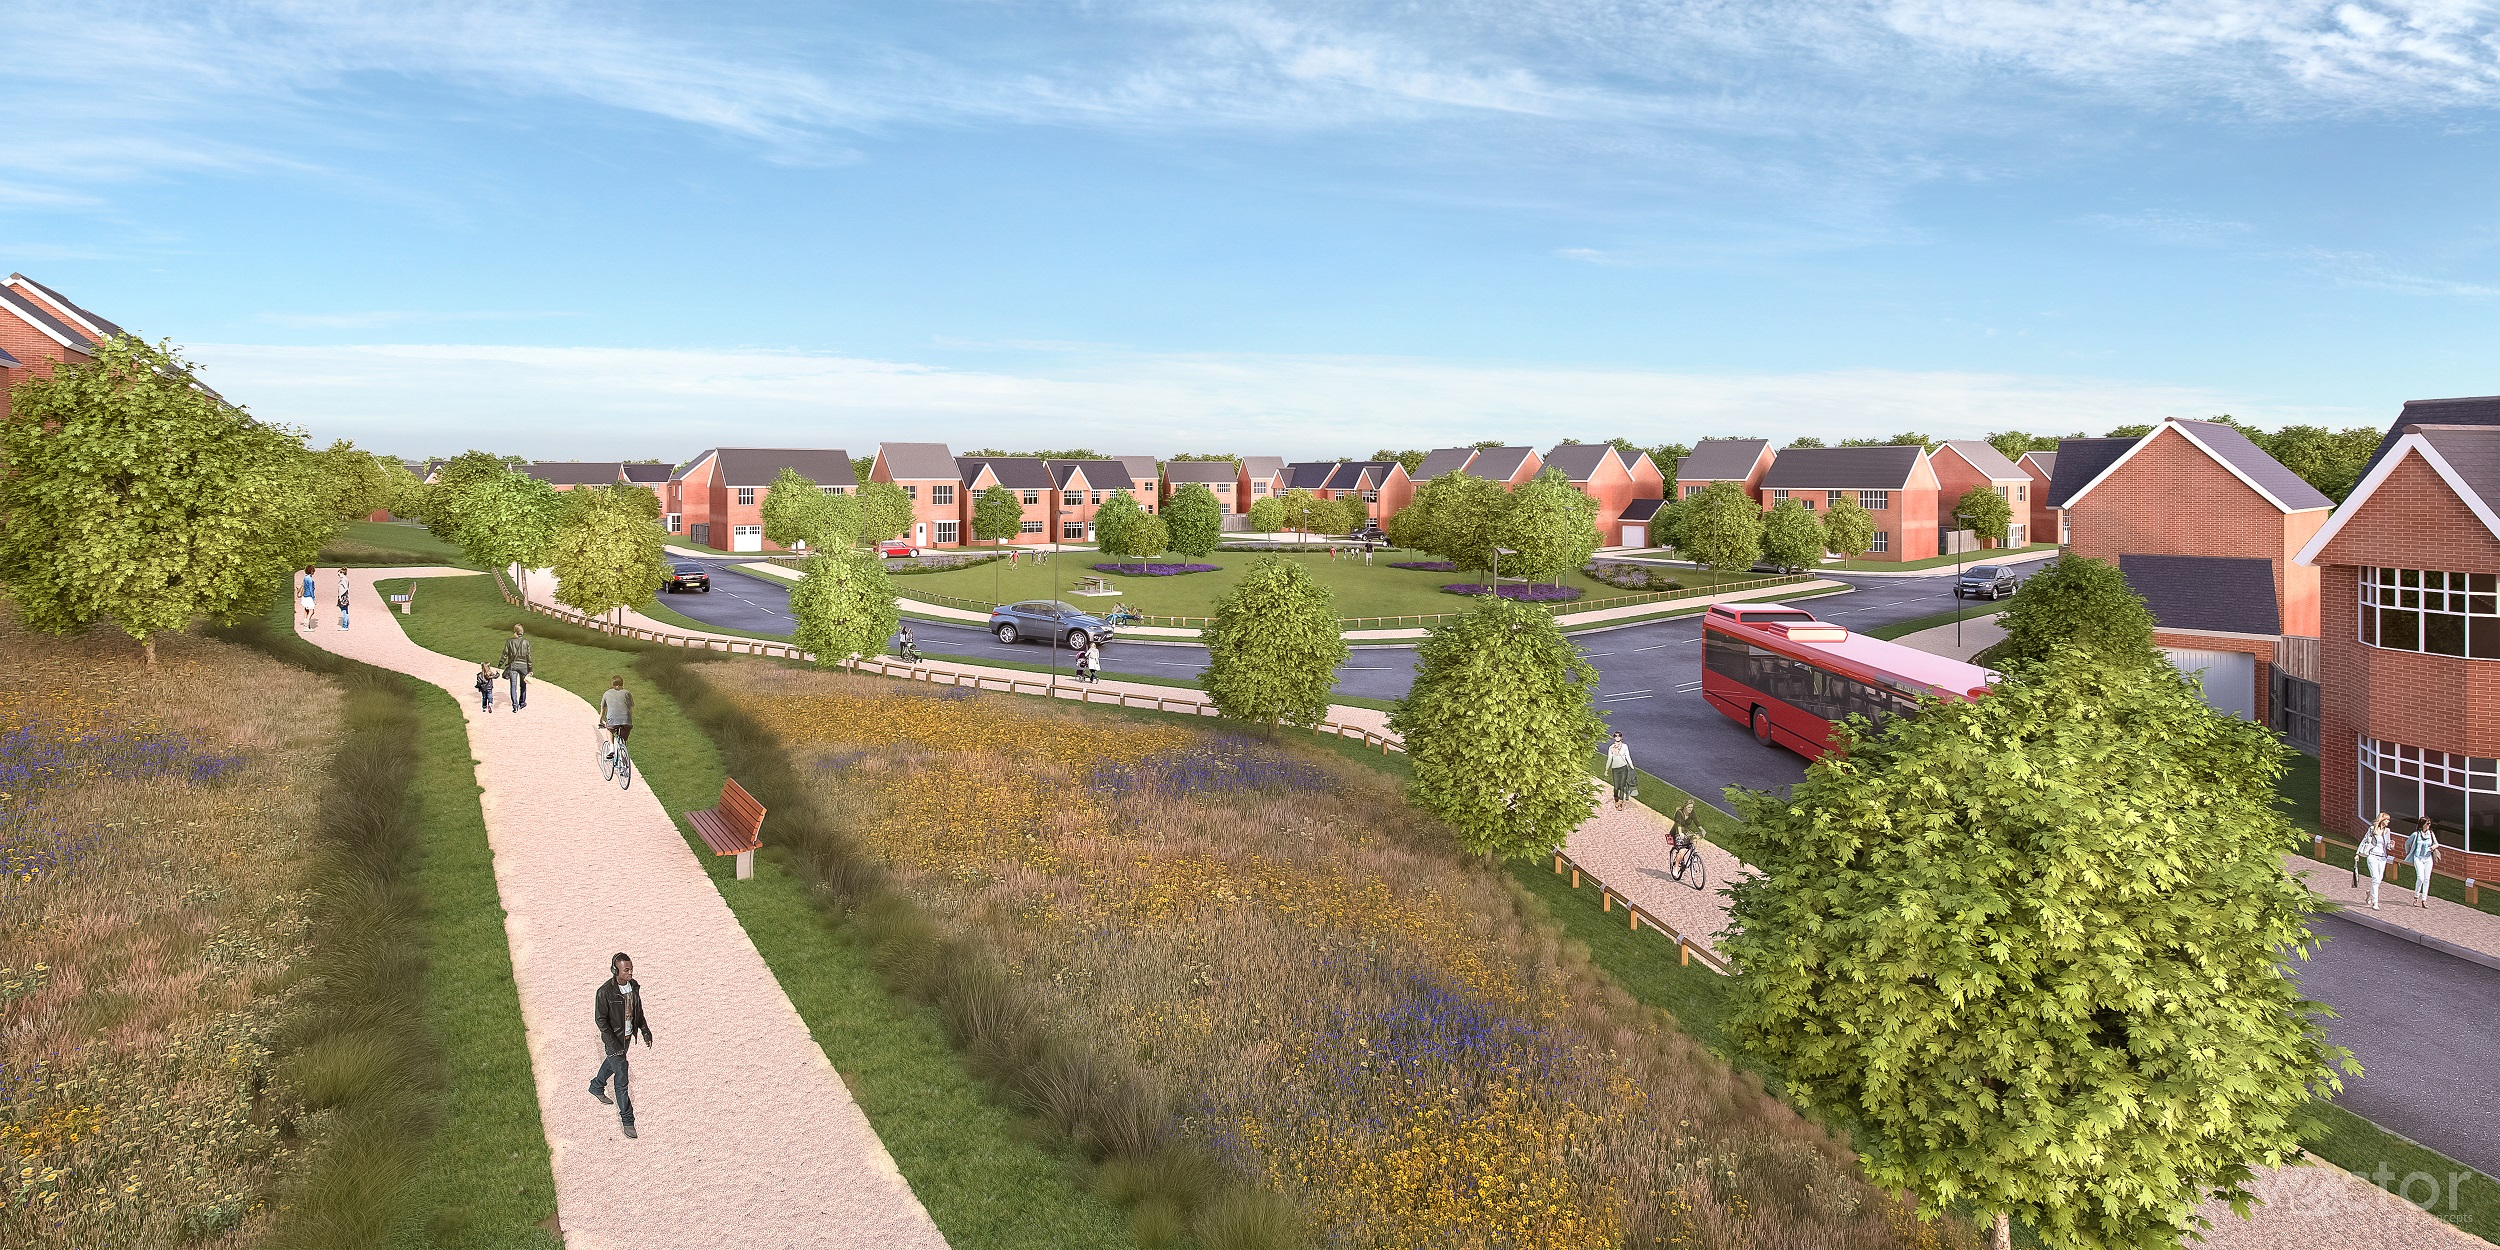 Bilston Urban Village housing public consultation event